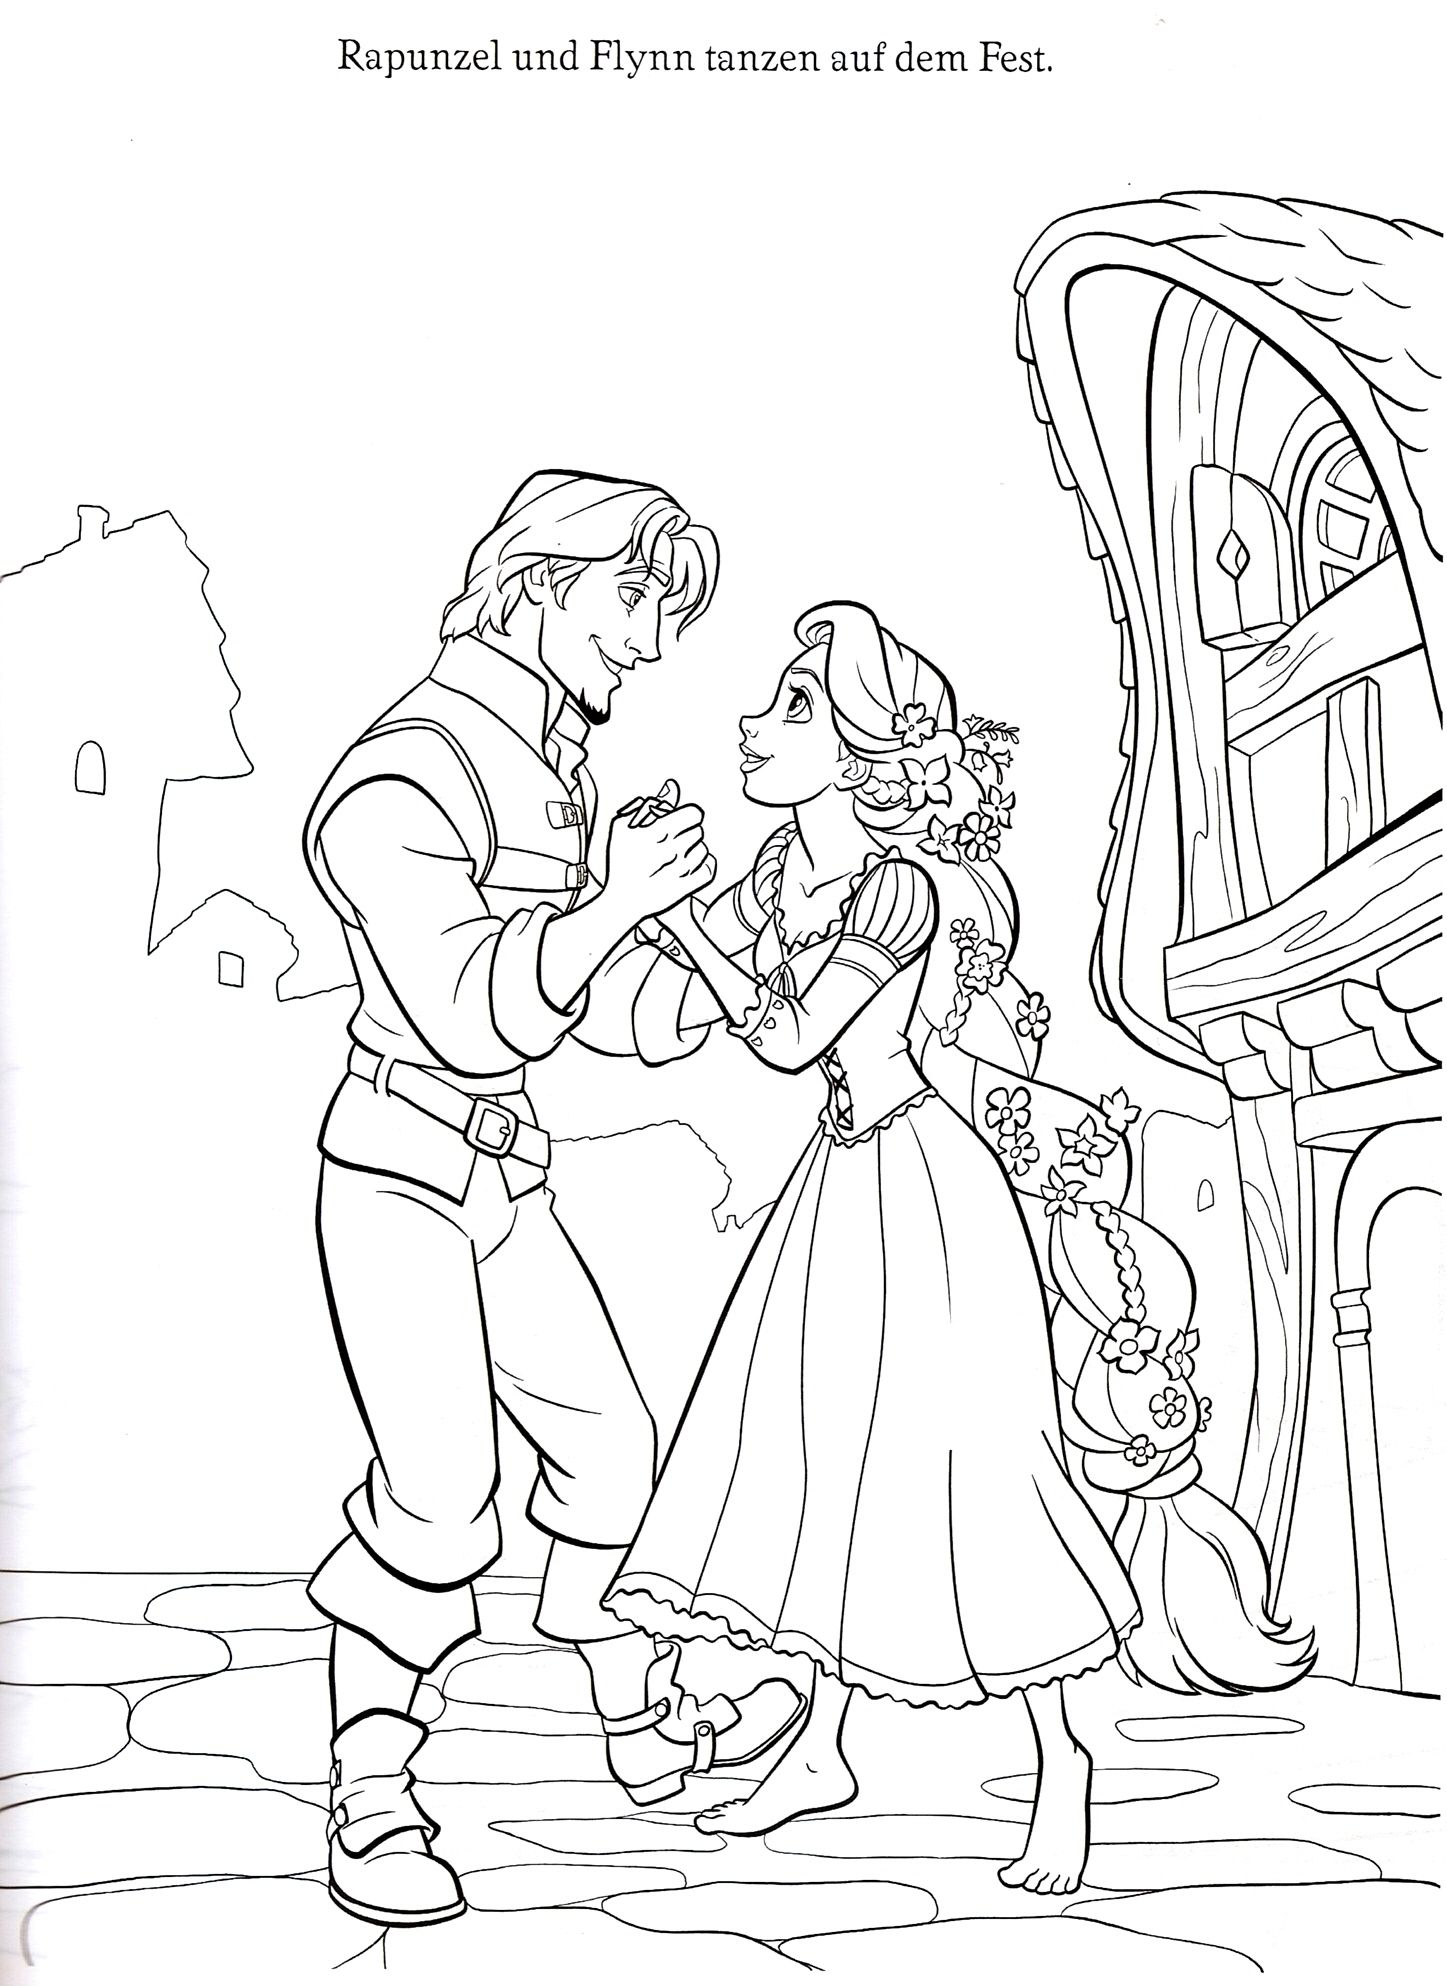 flynn rapunzel disneys tangled coloring page